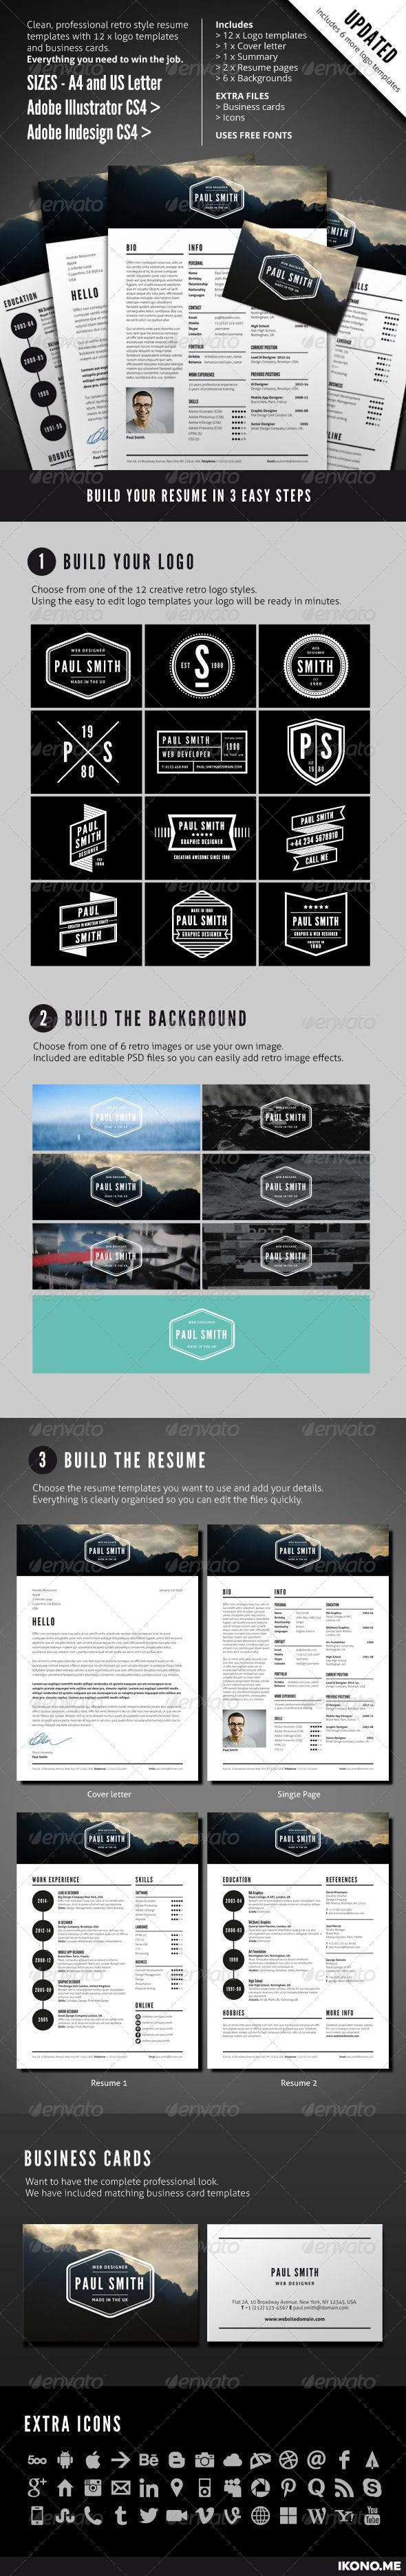 Job Resume 67 best Resume Templates images